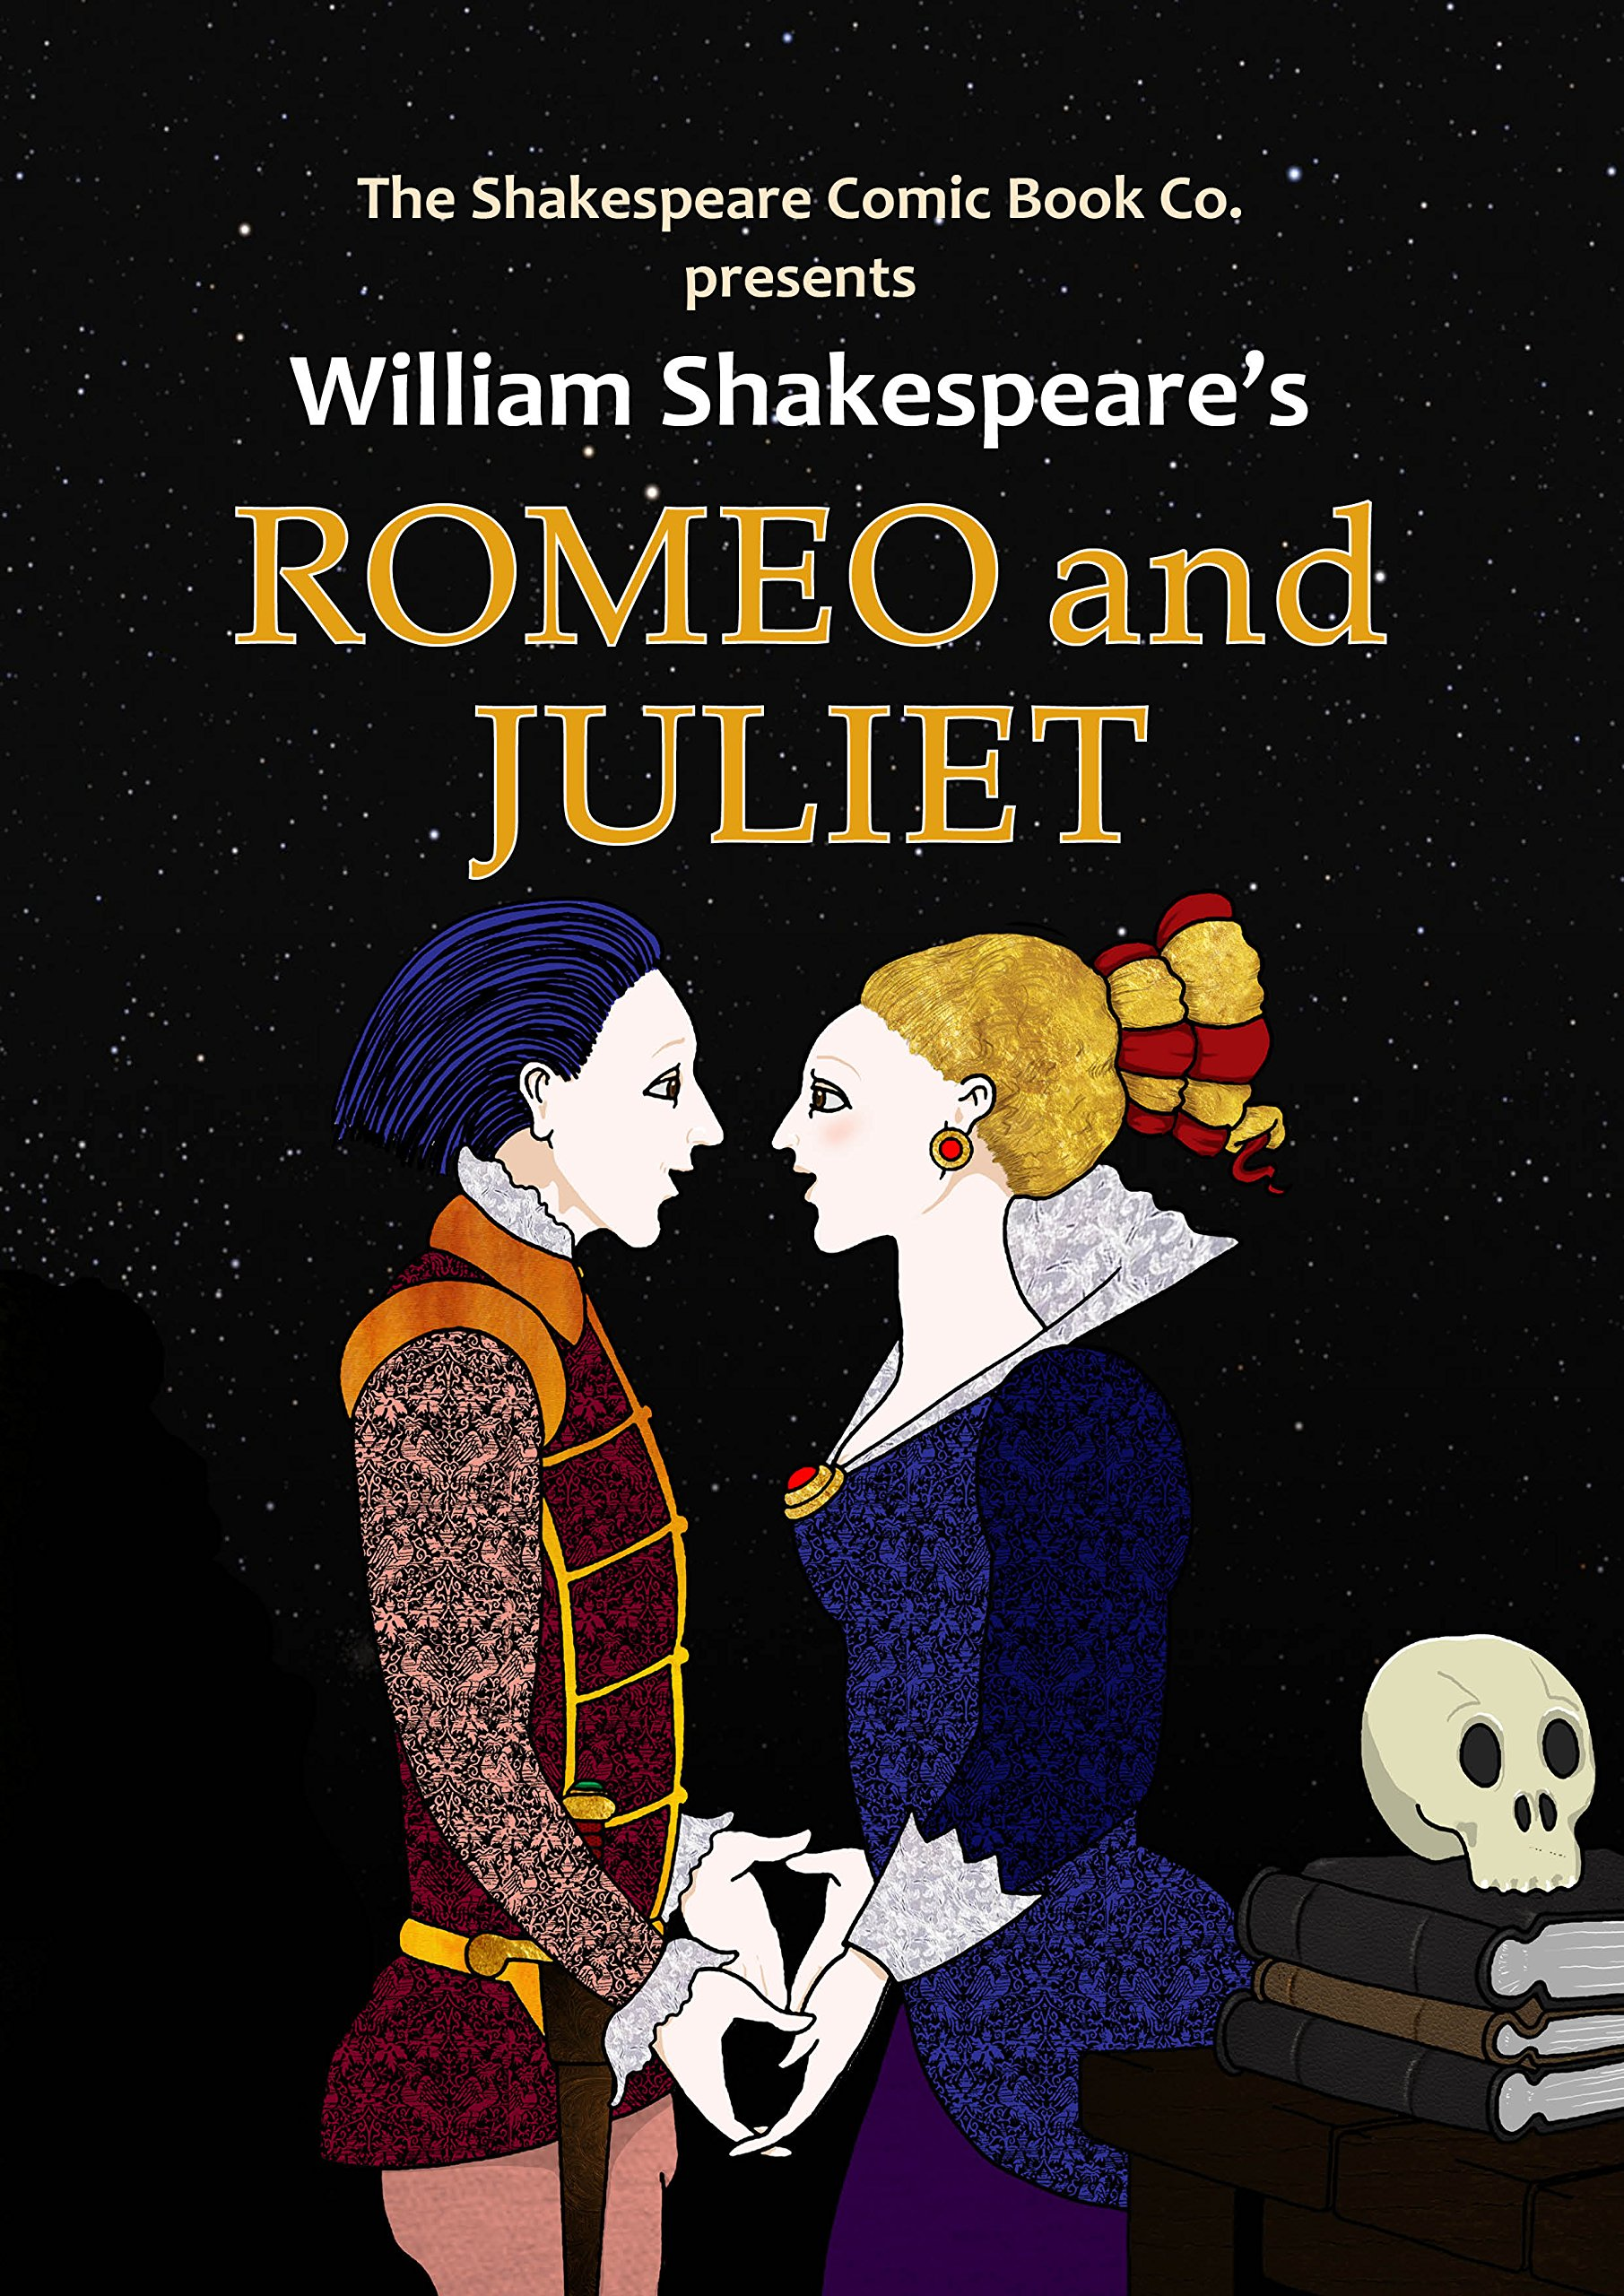 Romeo And Juliet In Full Colour Cartoon Illustrated Format Shakespeare Comic Books William Shakespeare 9780955376146 Amazon Com Books